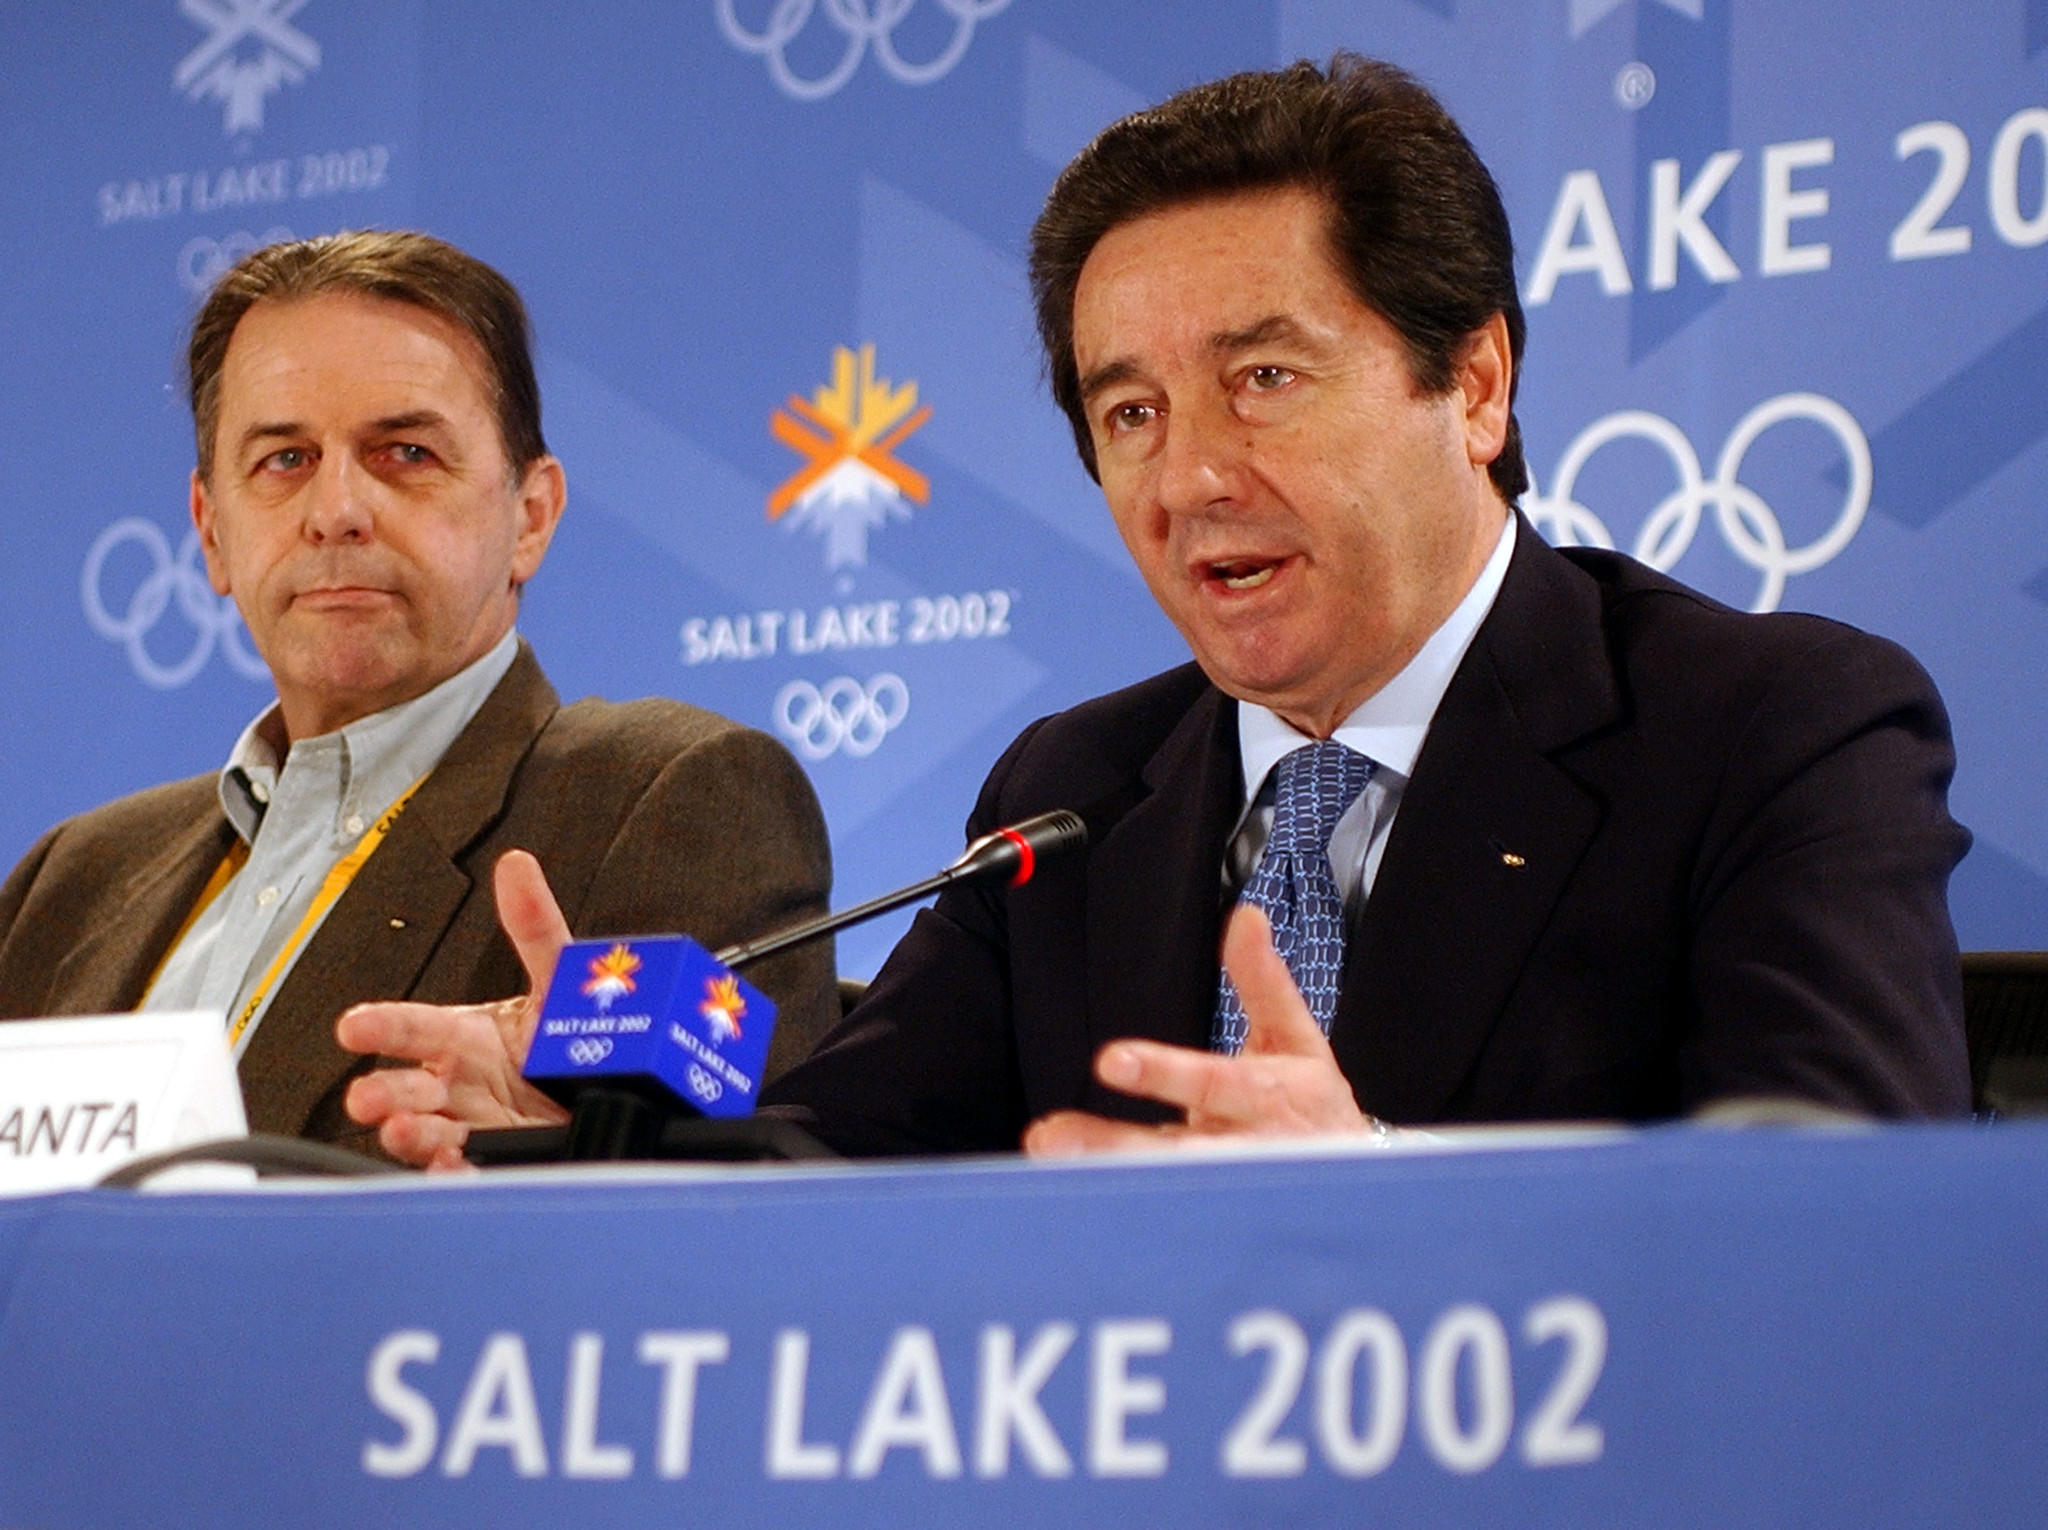 International Skating president Ottavio Cinquanta (right) and IOC president Jacques Rogge in 2002.